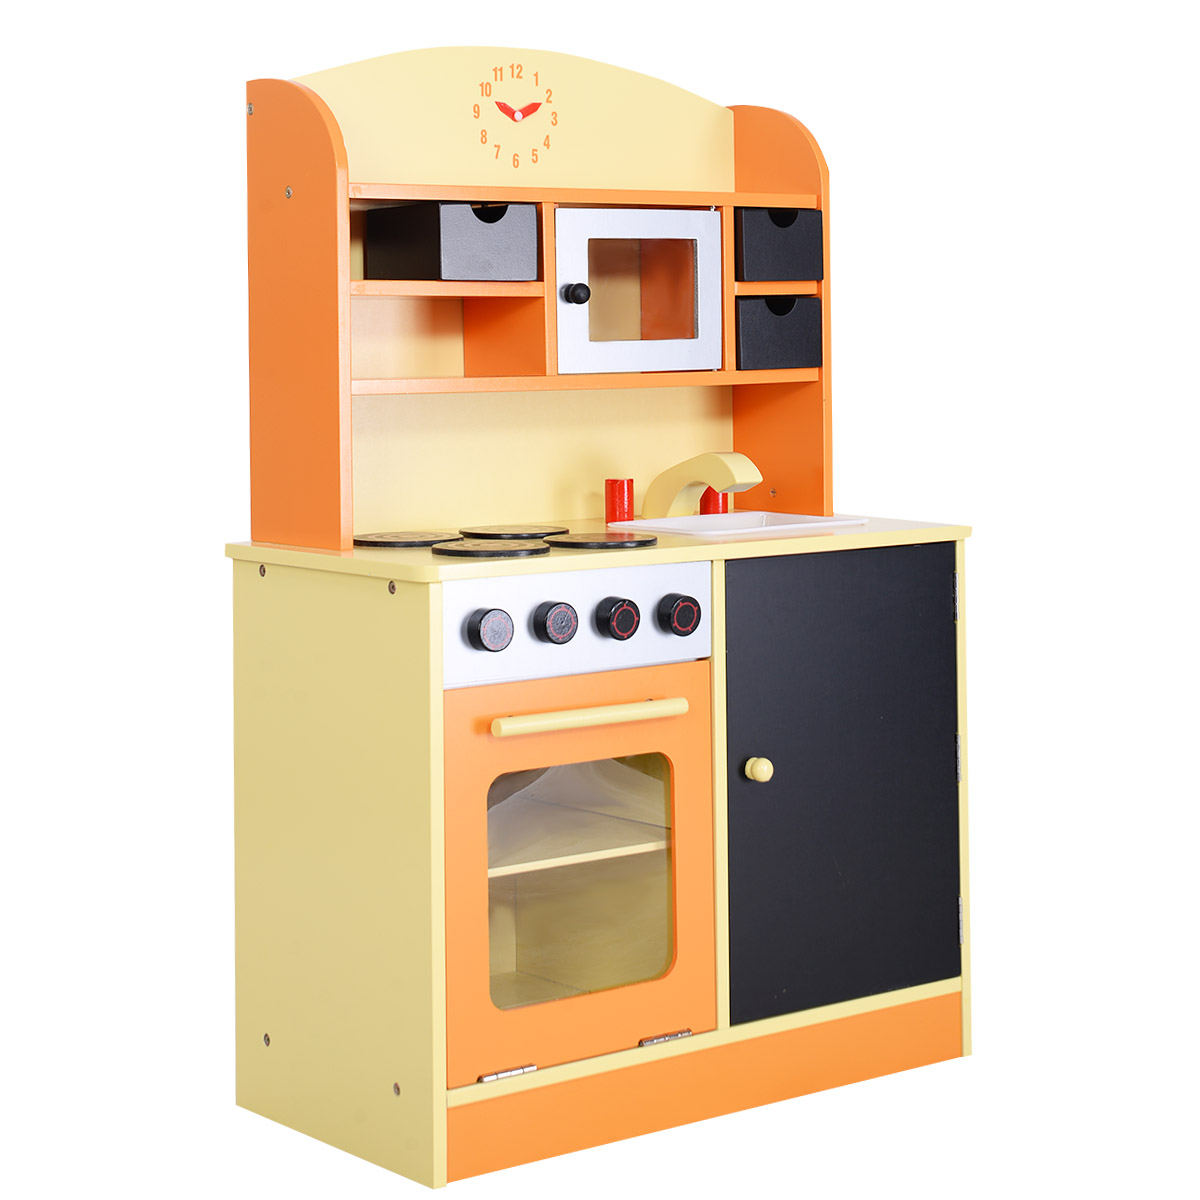 Marvelous Costway Wood Kitchen Toy Kids Cooking Pretend Play Set Toddler Wooden  Playset   Walmart.com